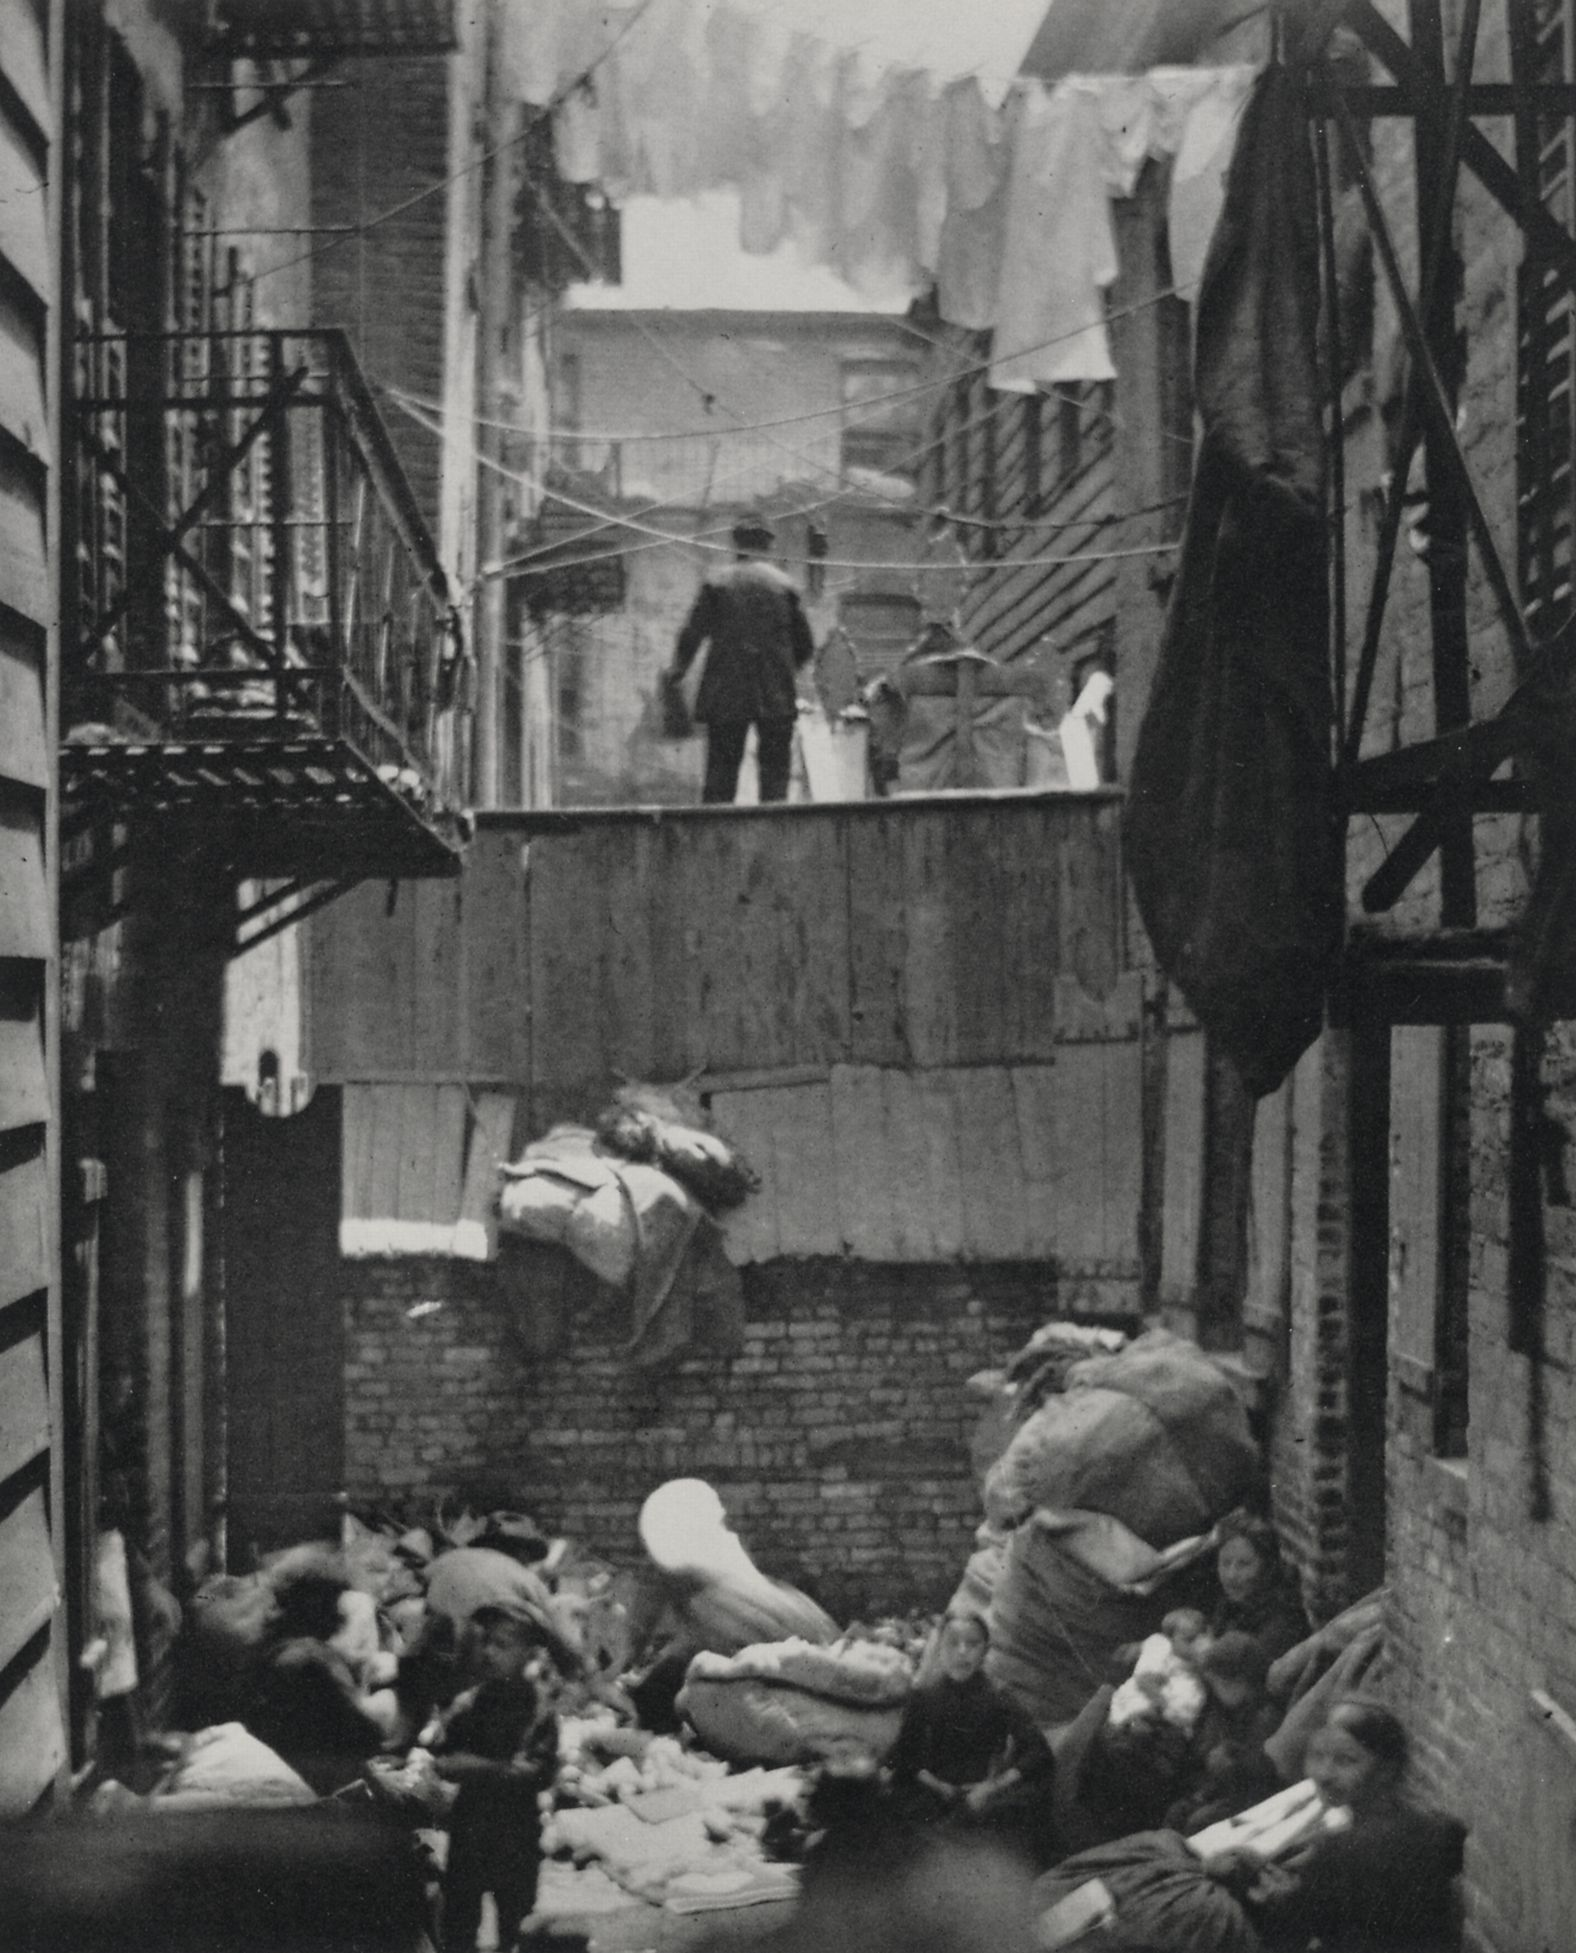 the easy assimilation of jacob riis in america Jacob riis, how the other half lives (1890) jacob riis, a danish immigrant, combined photography and journalism into a powerful indictment of poverty in america his 1890, how the other half lives shocked americans with its raw depictions of urban slums.